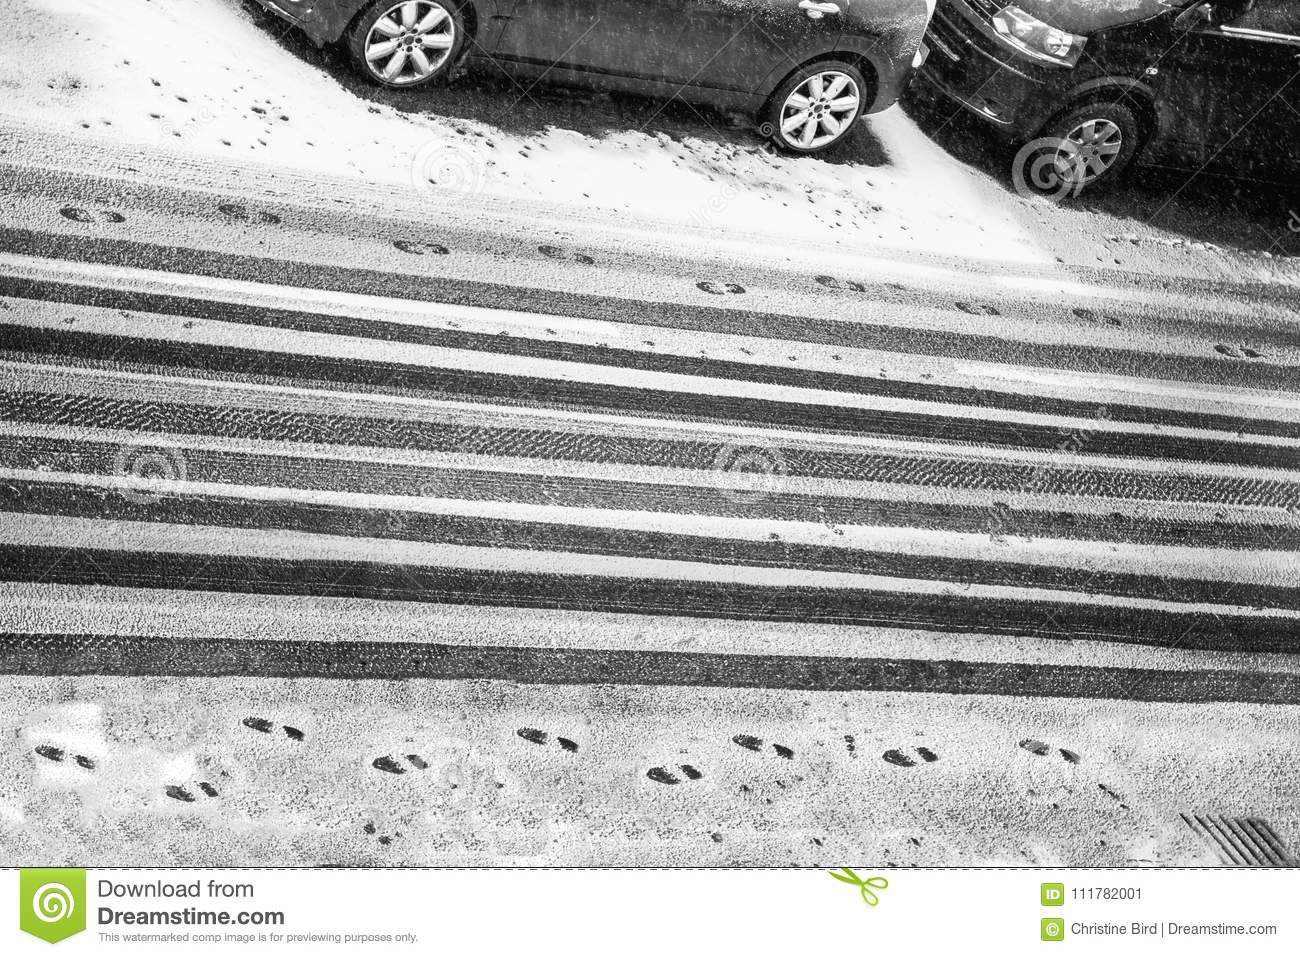 Black and white car treads and footprints in snow